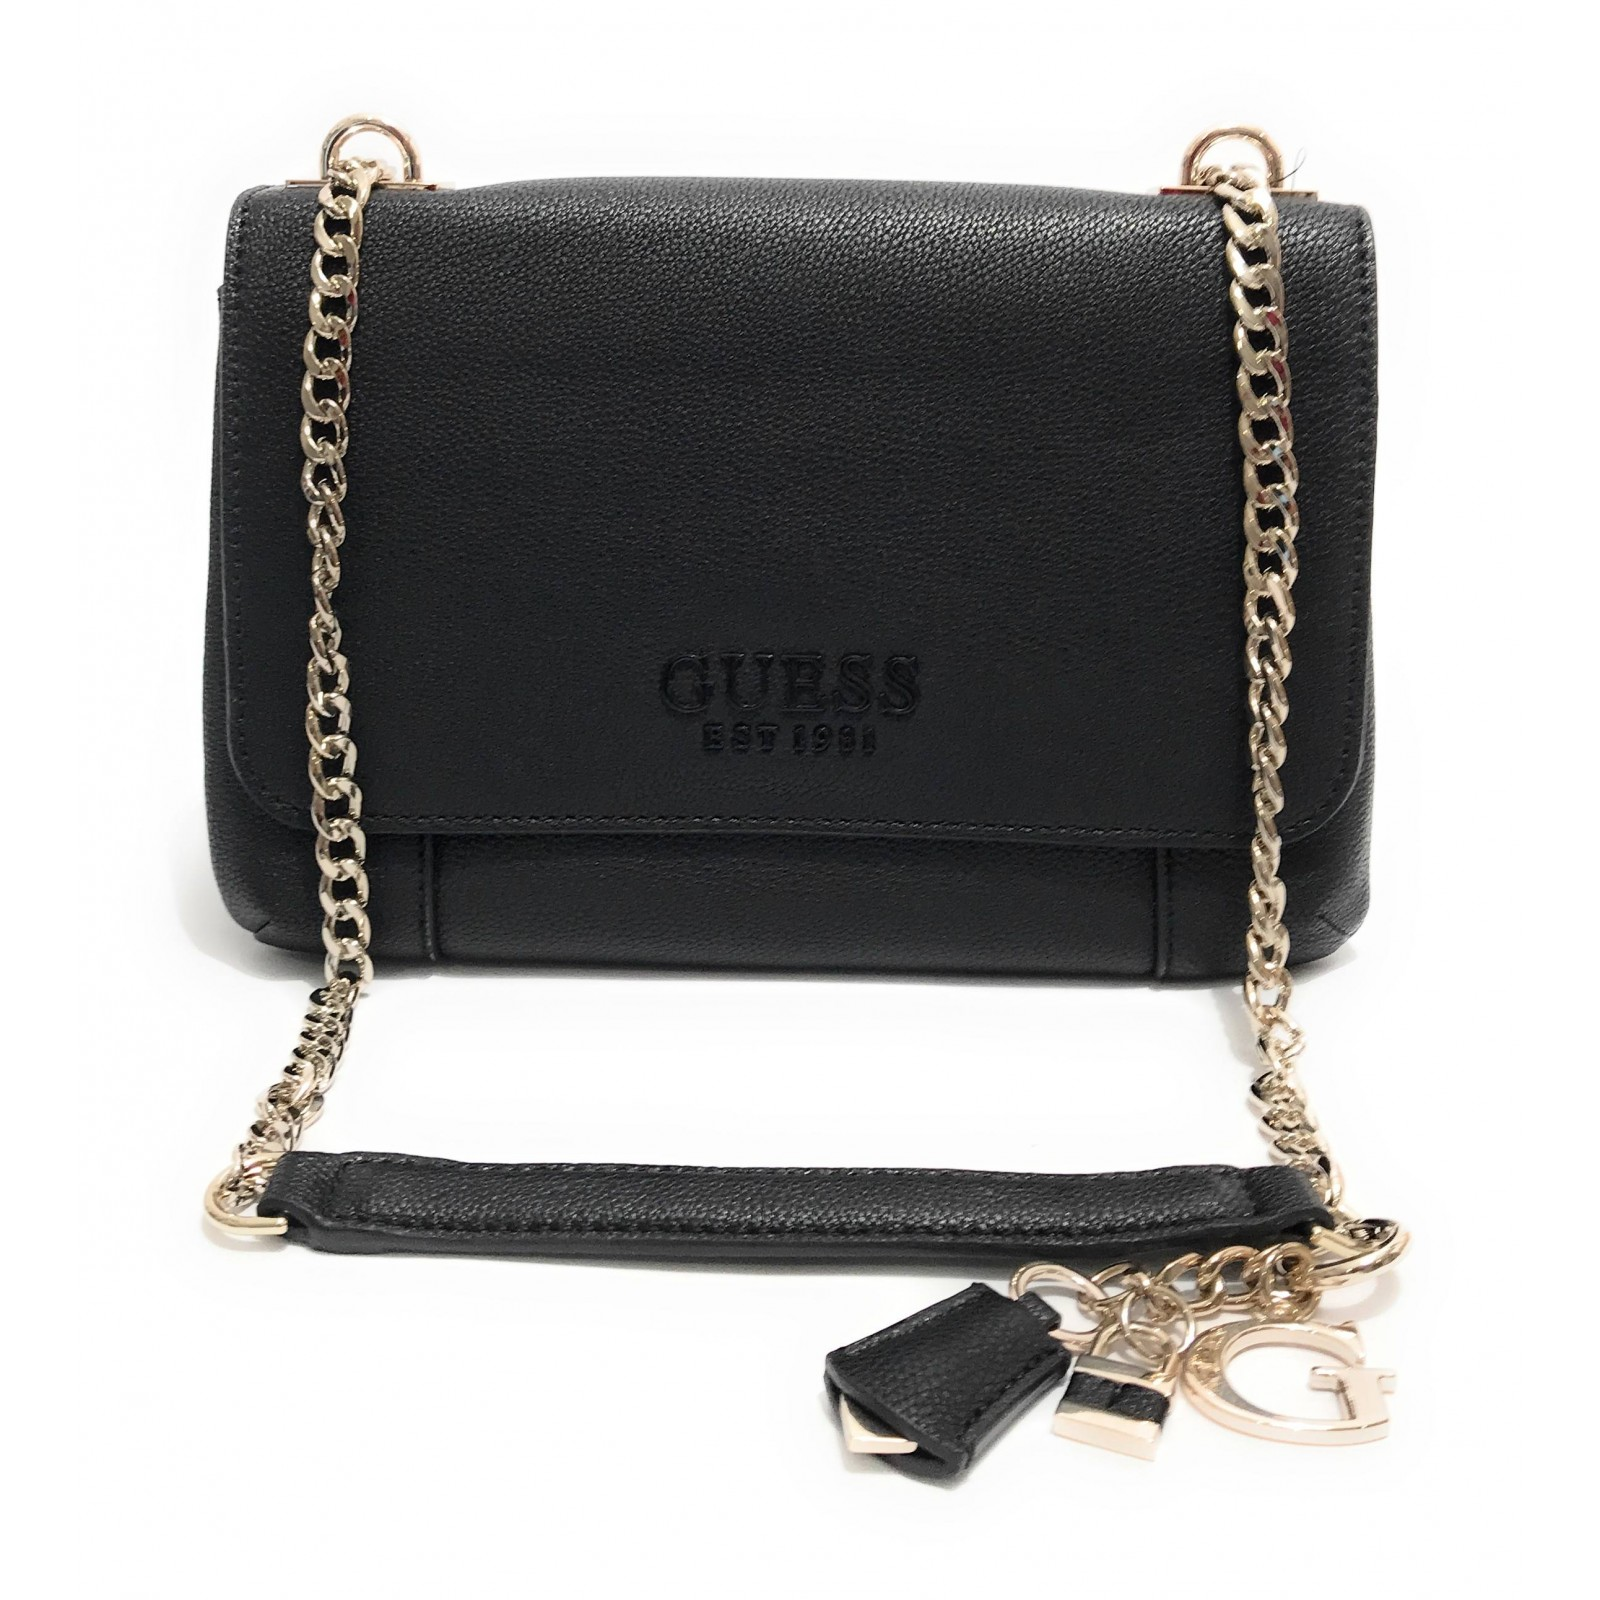 Borsa Guess tracolla Holly 2 comparti in ecopelle nero BS20GU87 Dimensioni borsa PICCOLA